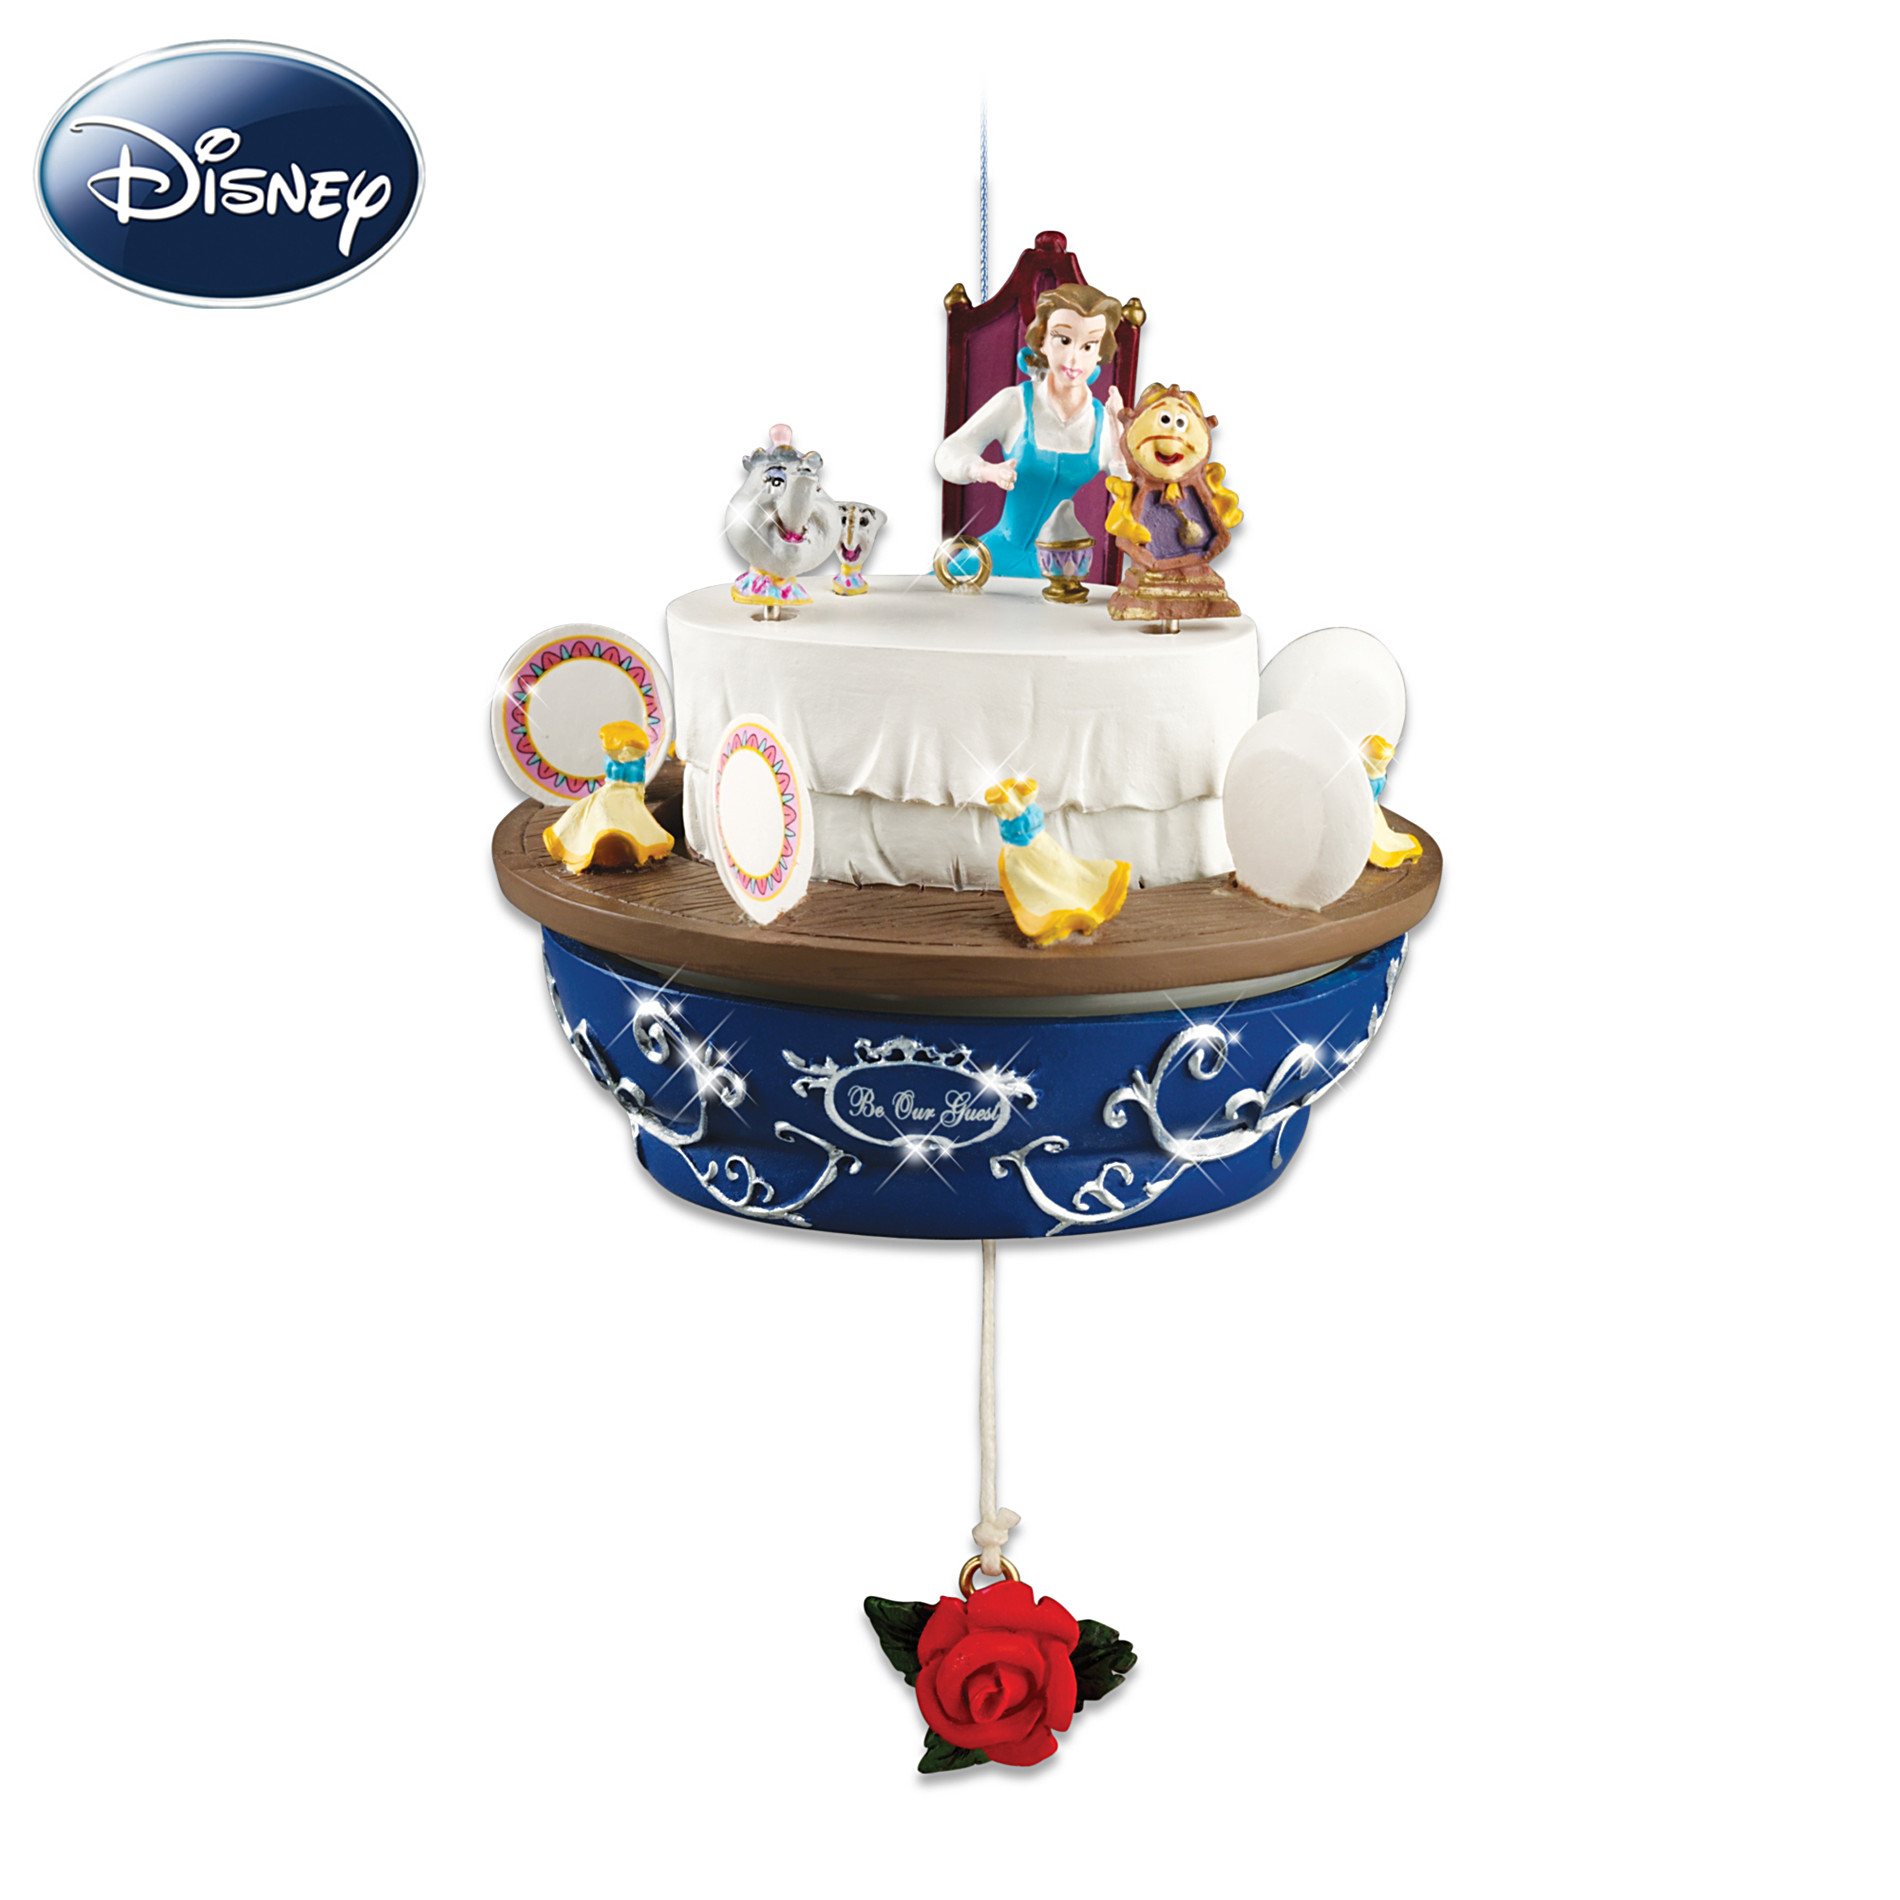 Hawthorne Village Disney Beauty And The Beast Christmas Ornament: Belle Be Our Guest at Sears.com